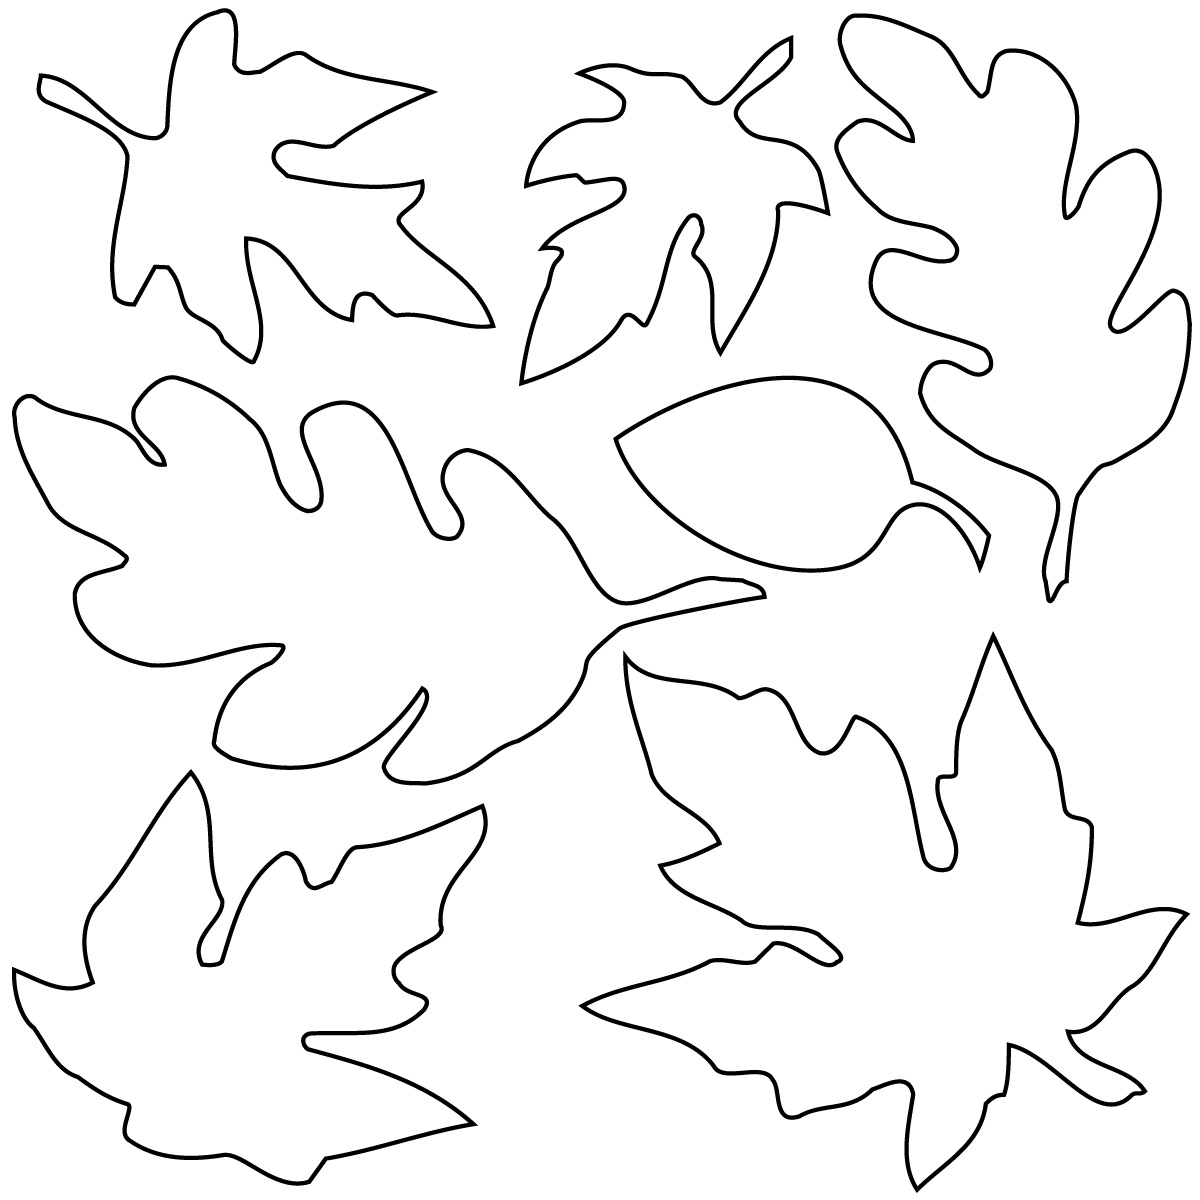 Autumn Leaves Clip Art Black And White | T-O-N